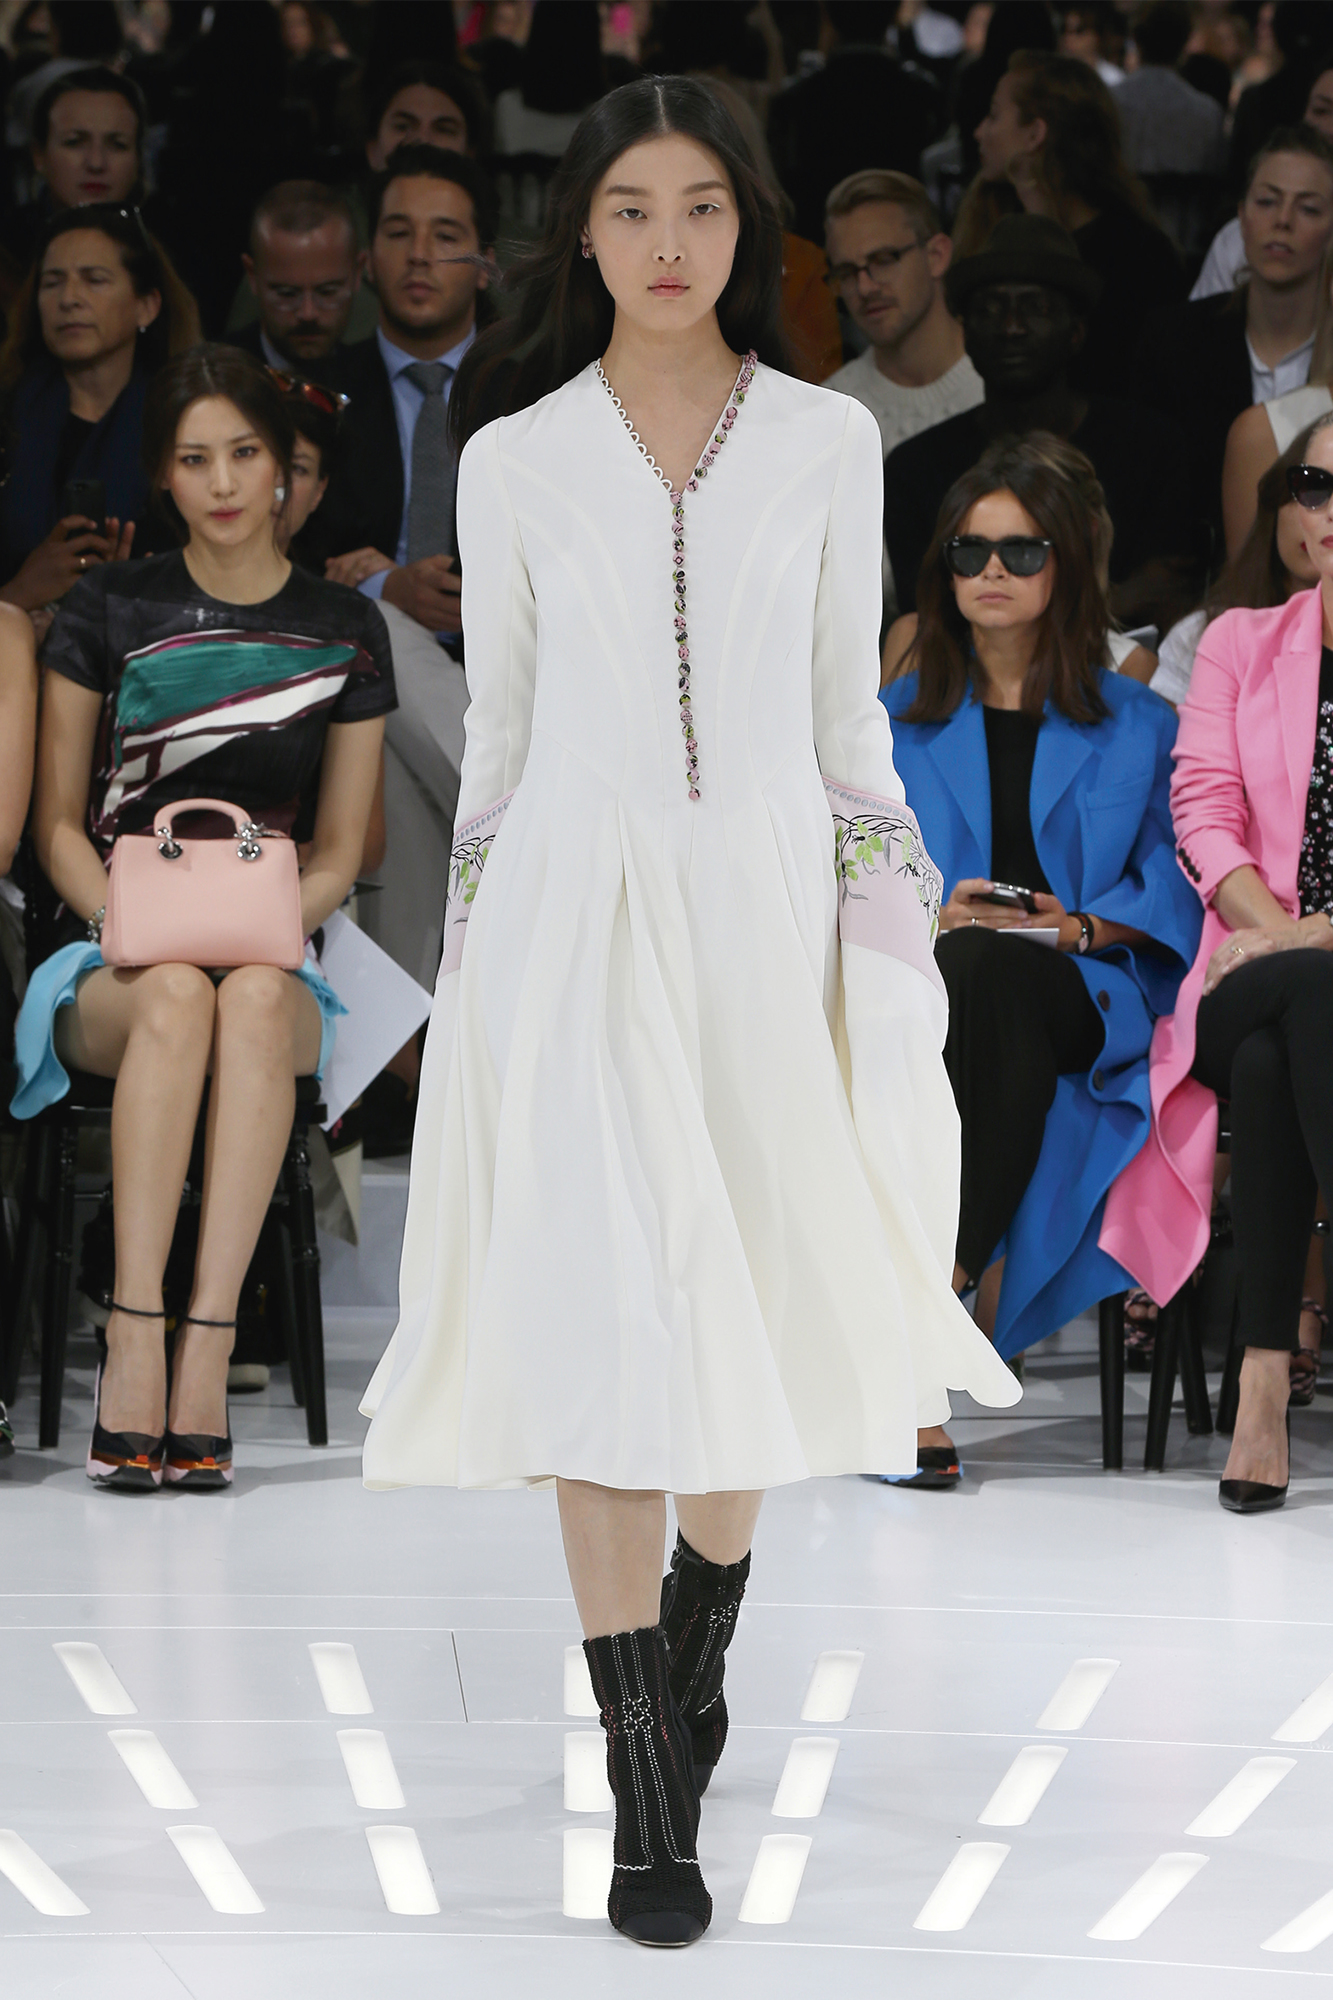 Christian Dior Haute Couture Spring-Summer Ready To Wear Dresses & Accessories Collection 2015-16 (1)